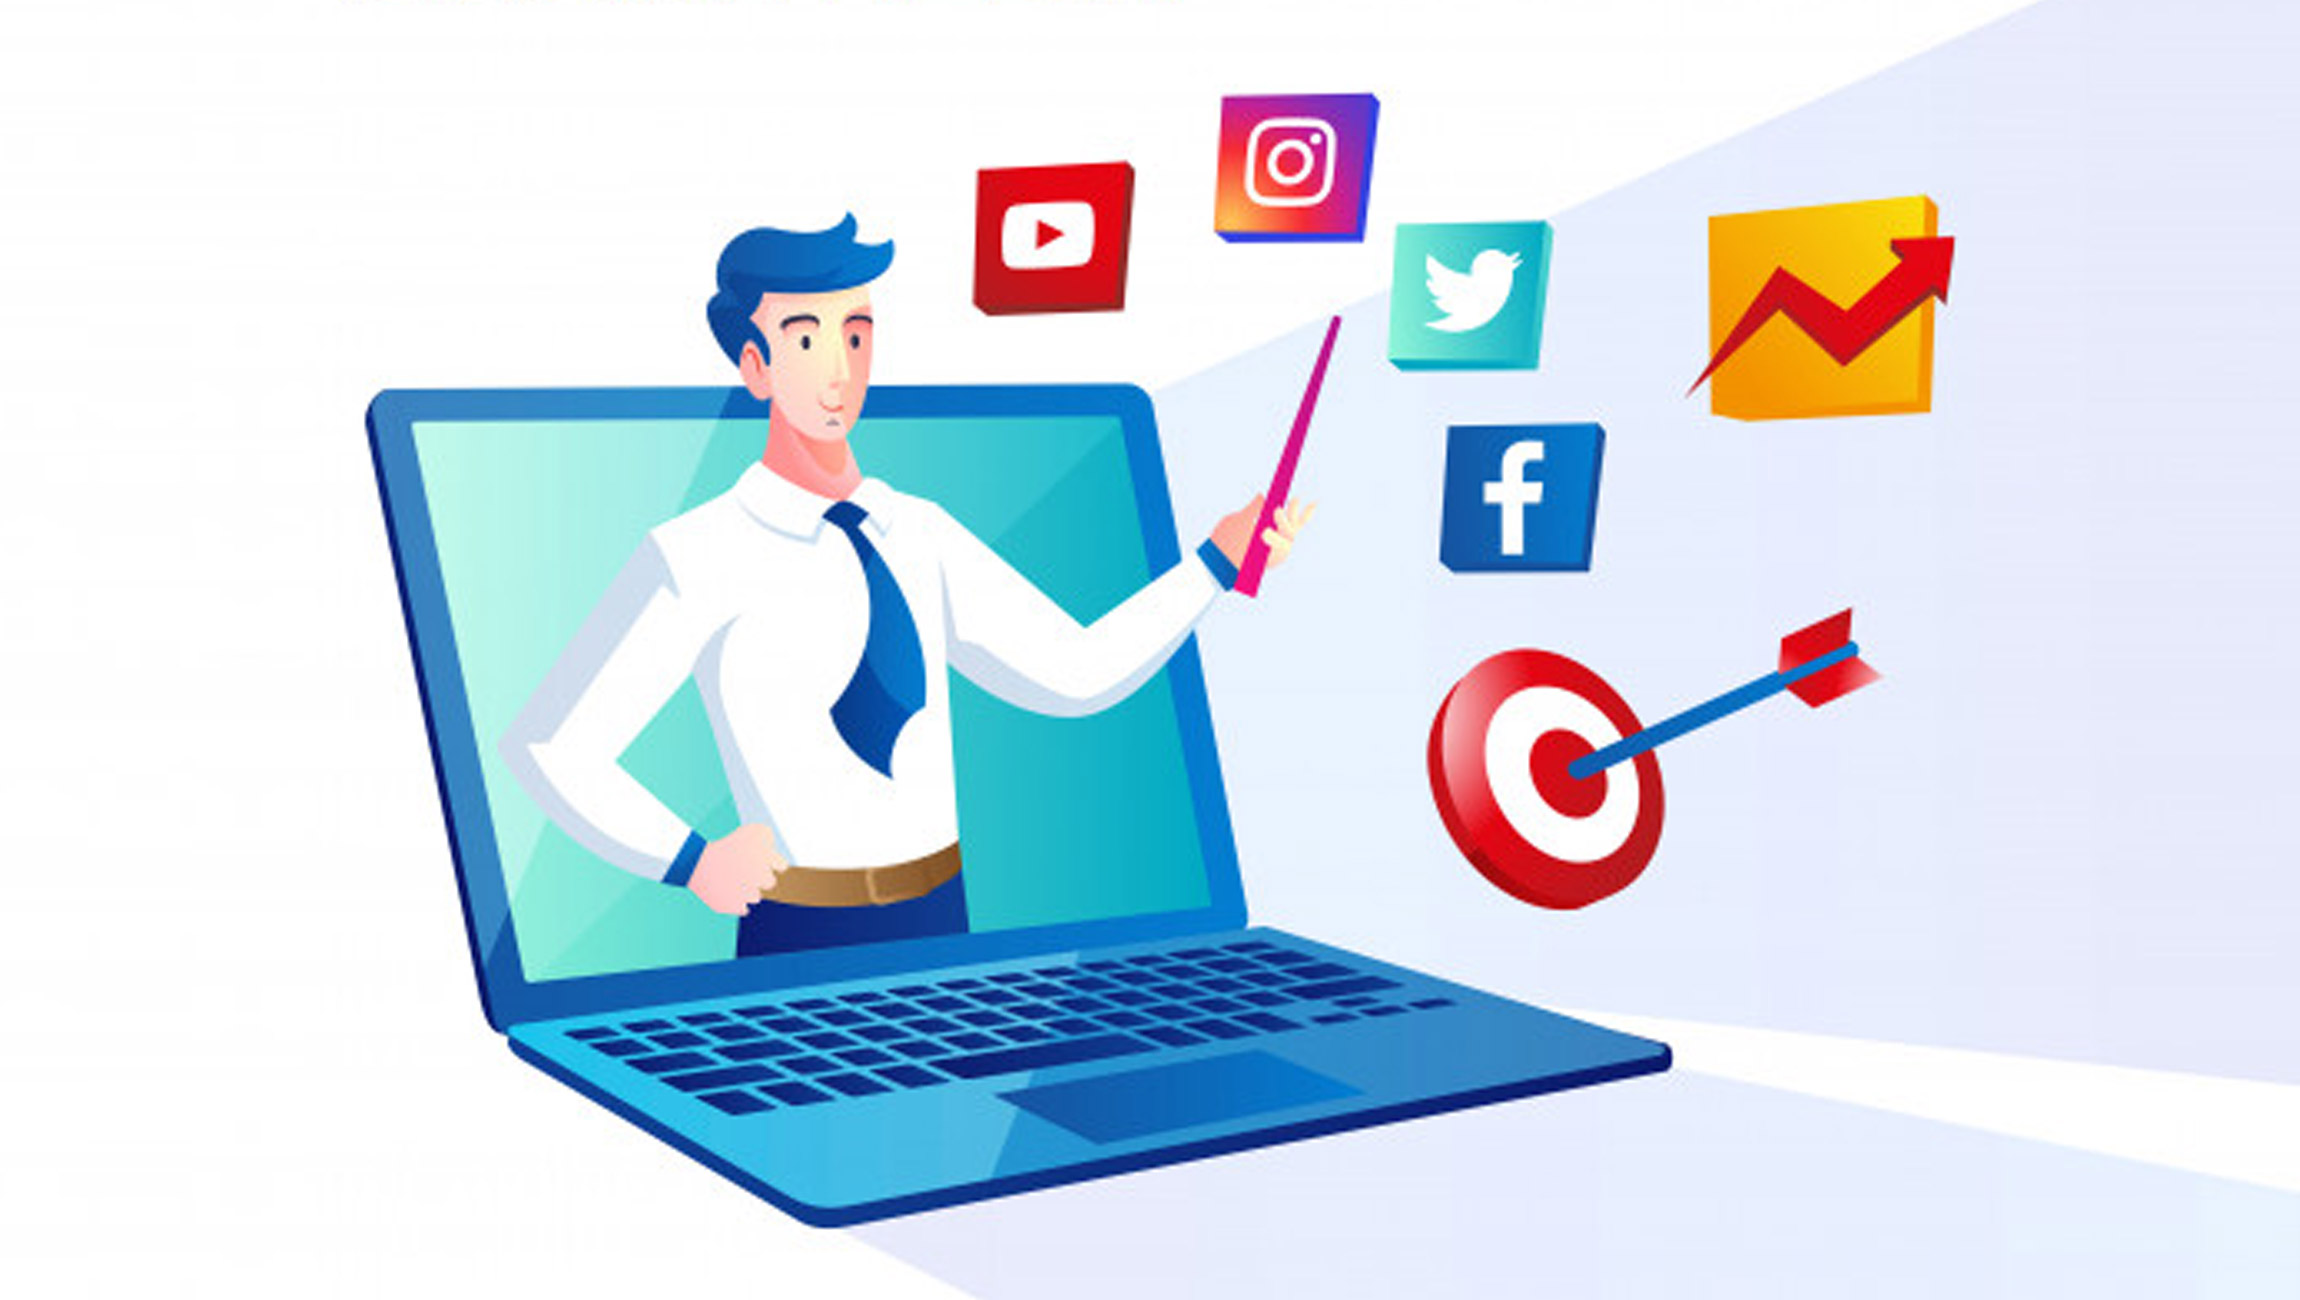 Should you have a Stronger Organic Social Media Marketing Strategy?